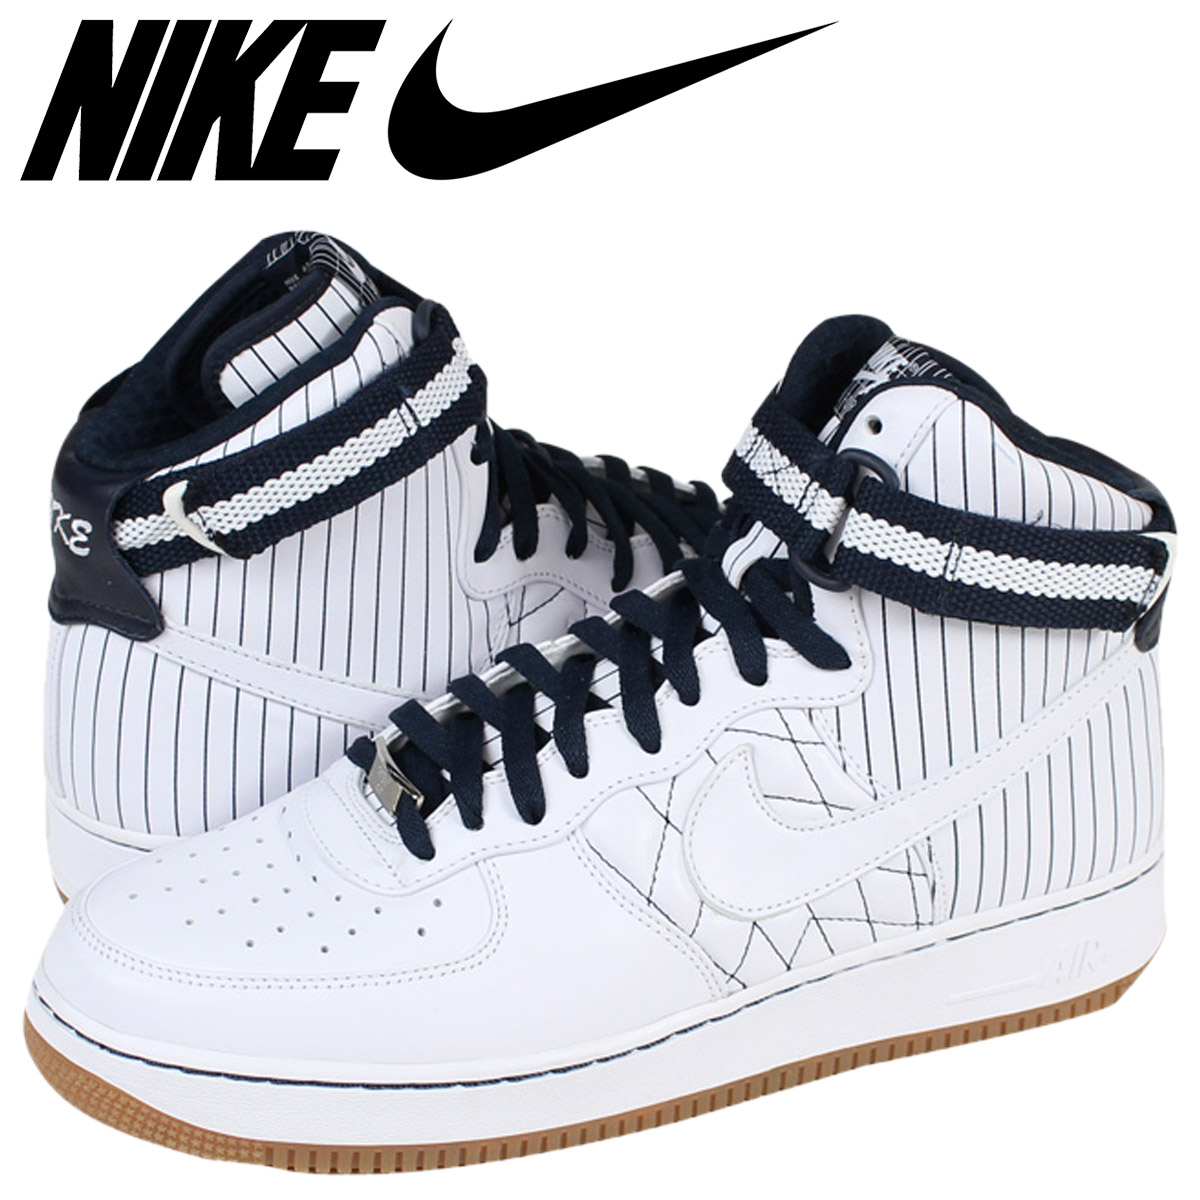 332 White 490 High Nike Force Nyc Air Men Sneakers Stadium 1 Yankees 111 Hi my8OvNnw0P